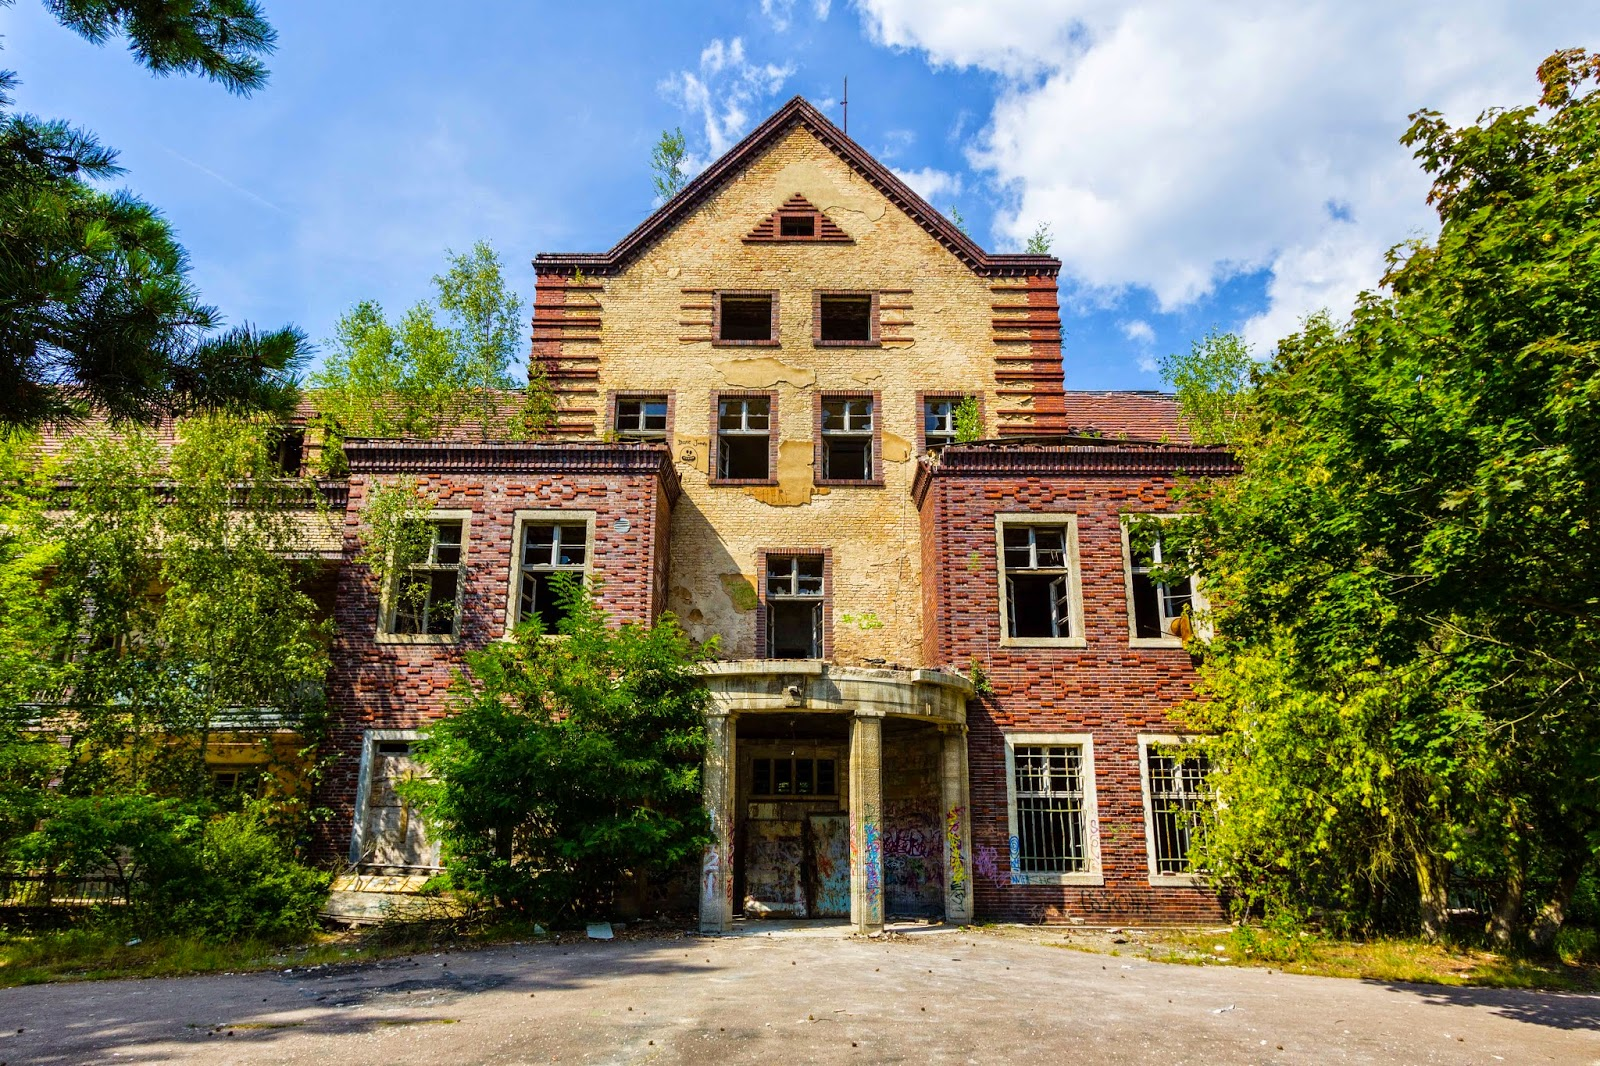 Single beelitz